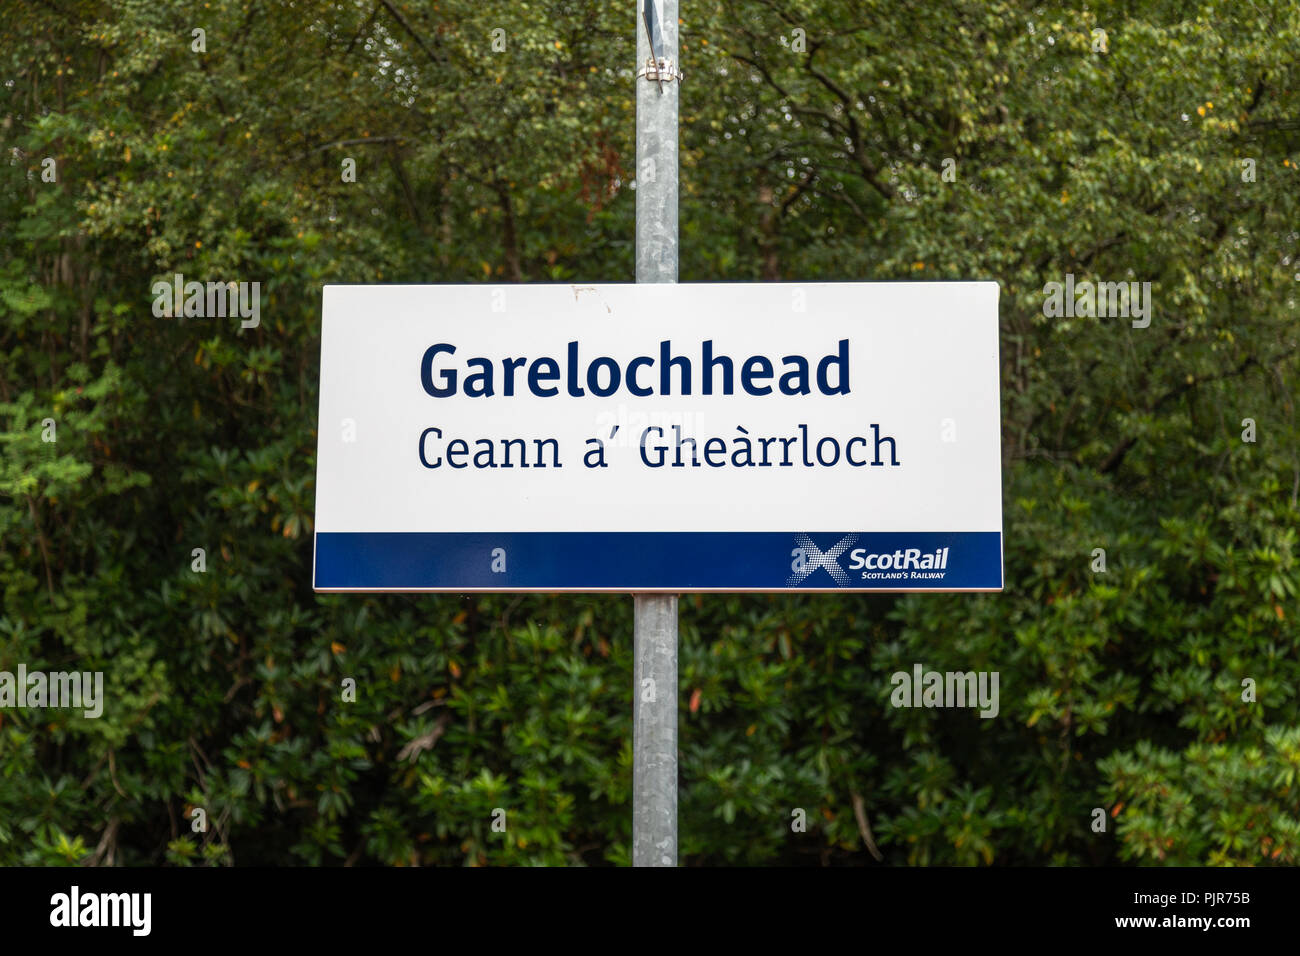 The station sign at Garelochhead Railway station near Helensburgh, Argyll and Bute - Stock Image